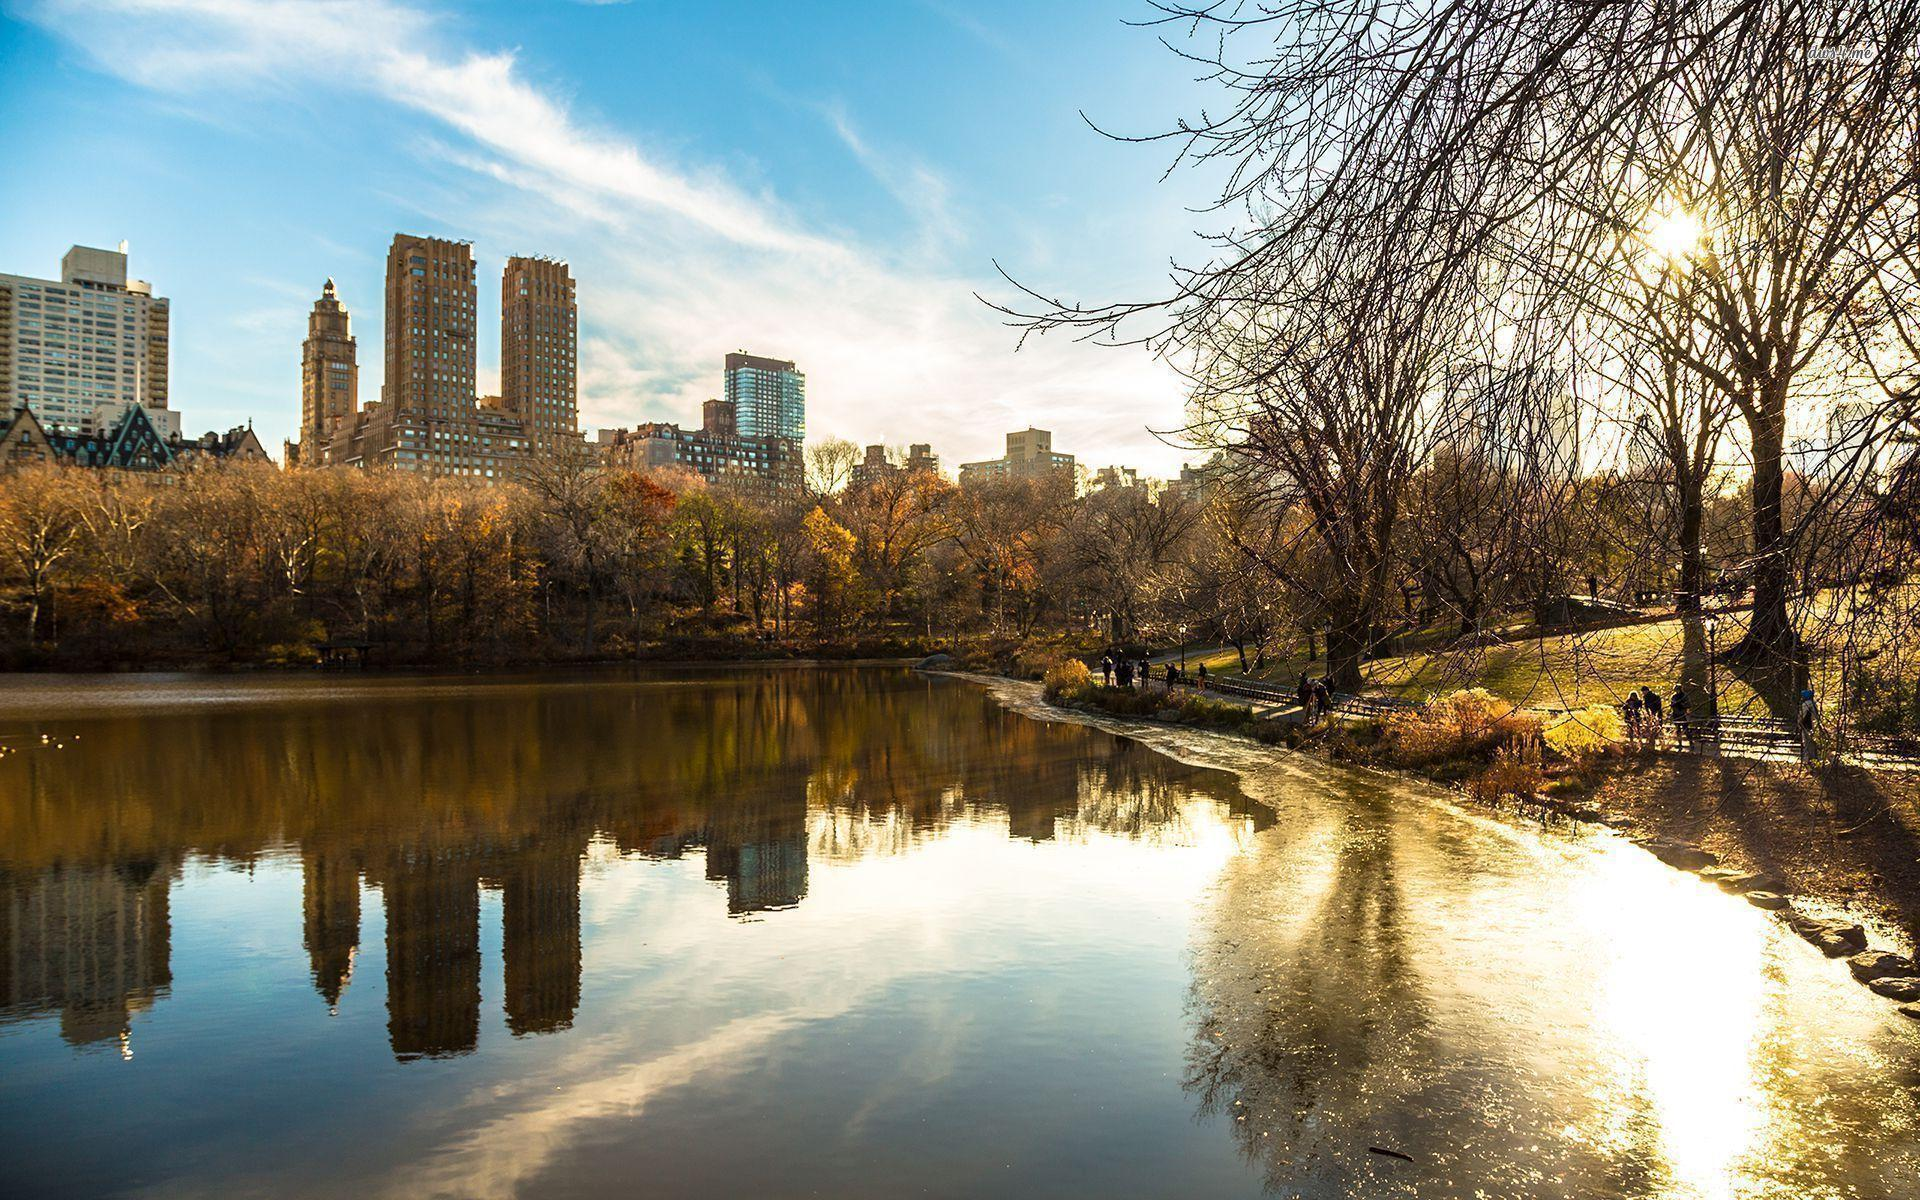 Autumn Central Park New York Wallpapers - Wallpaper Cave  |Autumn Central Park Screensavers